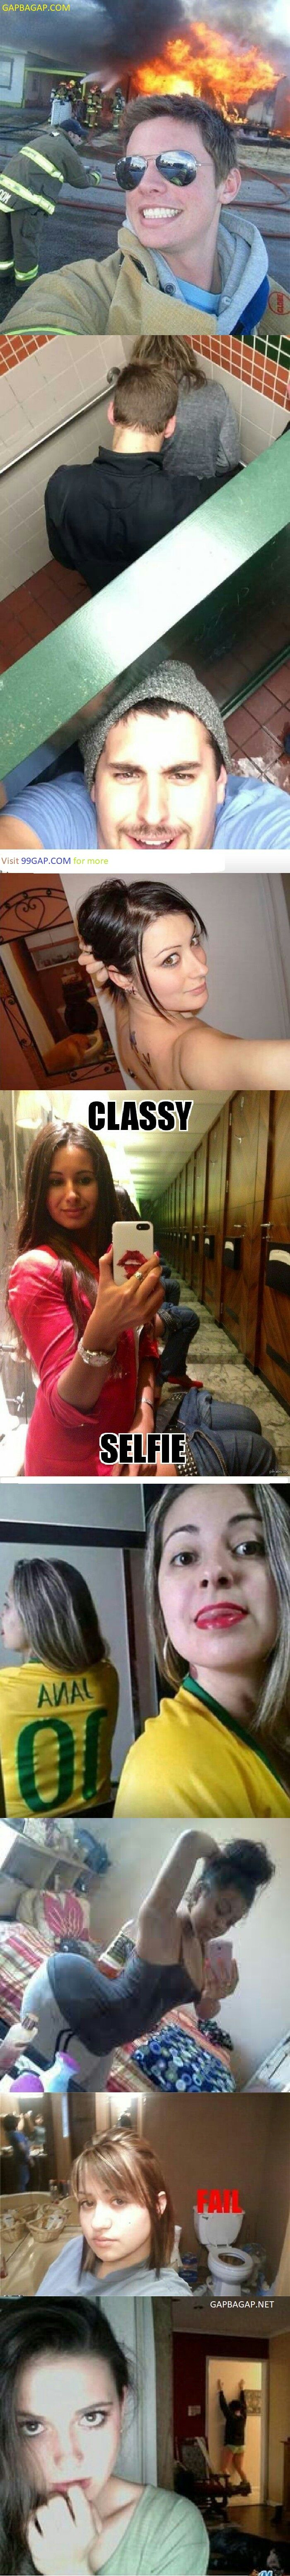 #Funny Selfie Fail Collection From Around The World #funnypictures